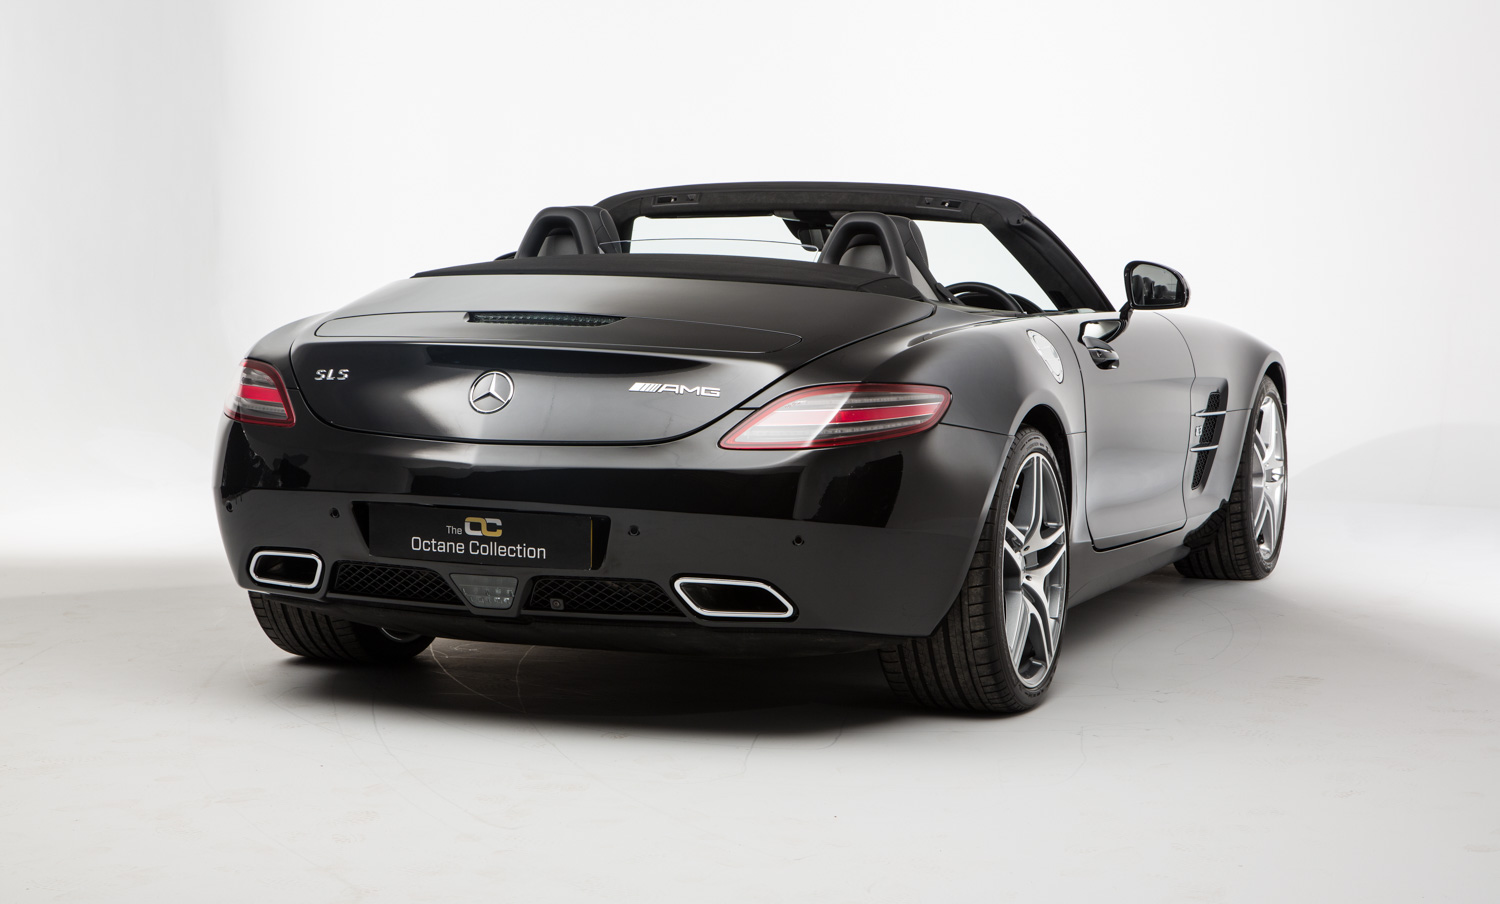 mercedes sls amg roadster the octane collection. Black Bedroom Furniture Sets. Home Design Ideas